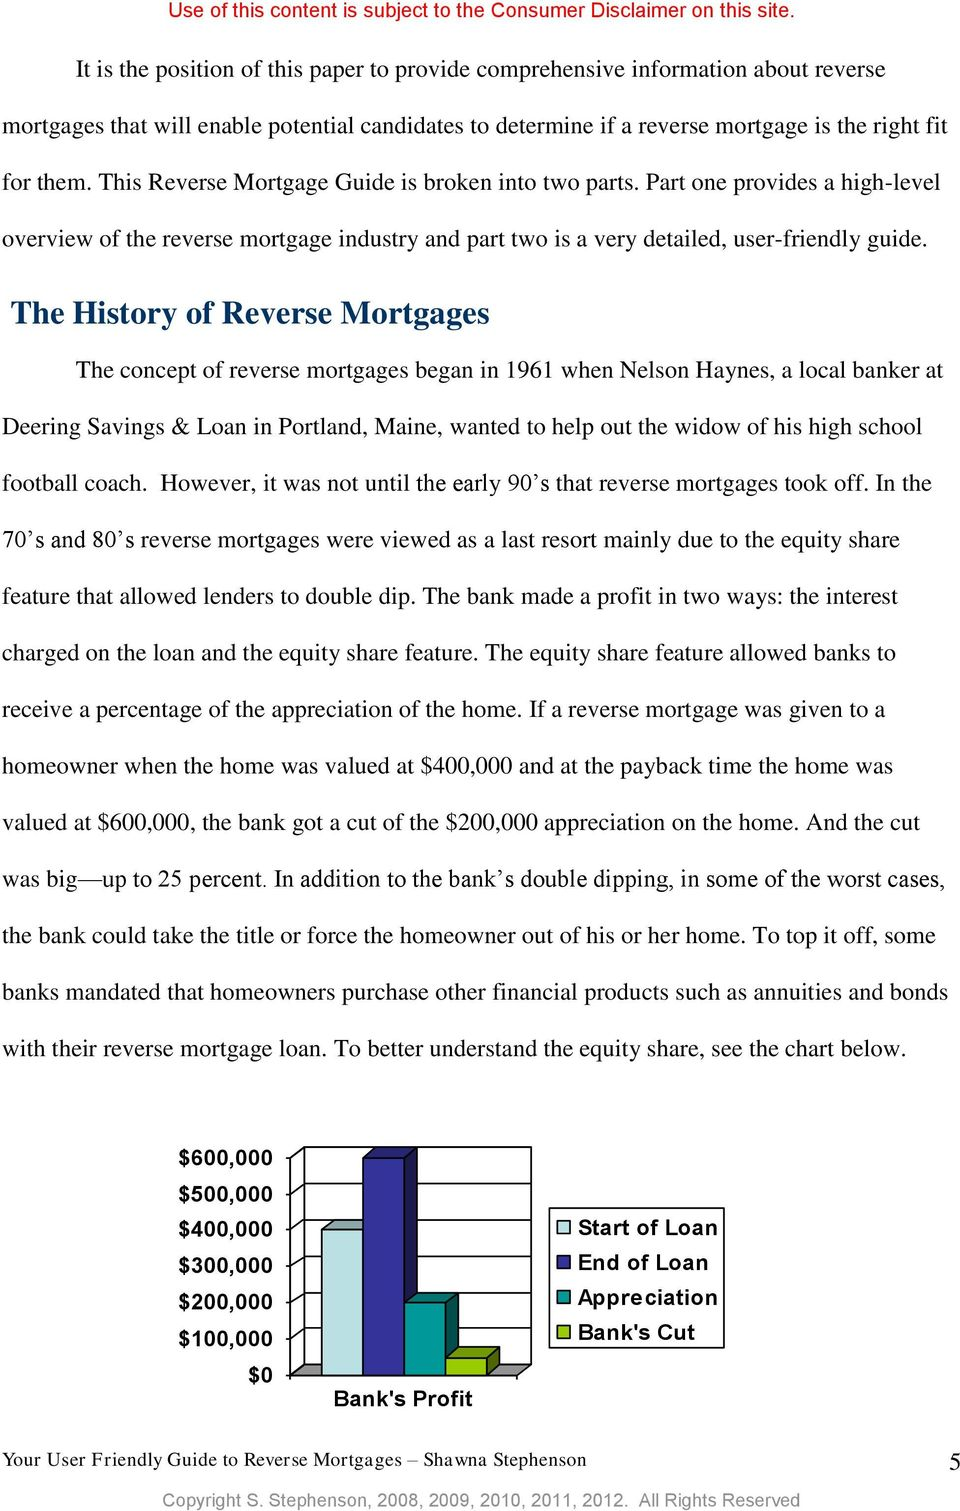 The History of Reverse Mortgages The concept of reverse mortgages began in 1961 when Nelson Haynes, a local banker at Deering Savings & Loan in Portland, Maine, wanted to help out the widow of his